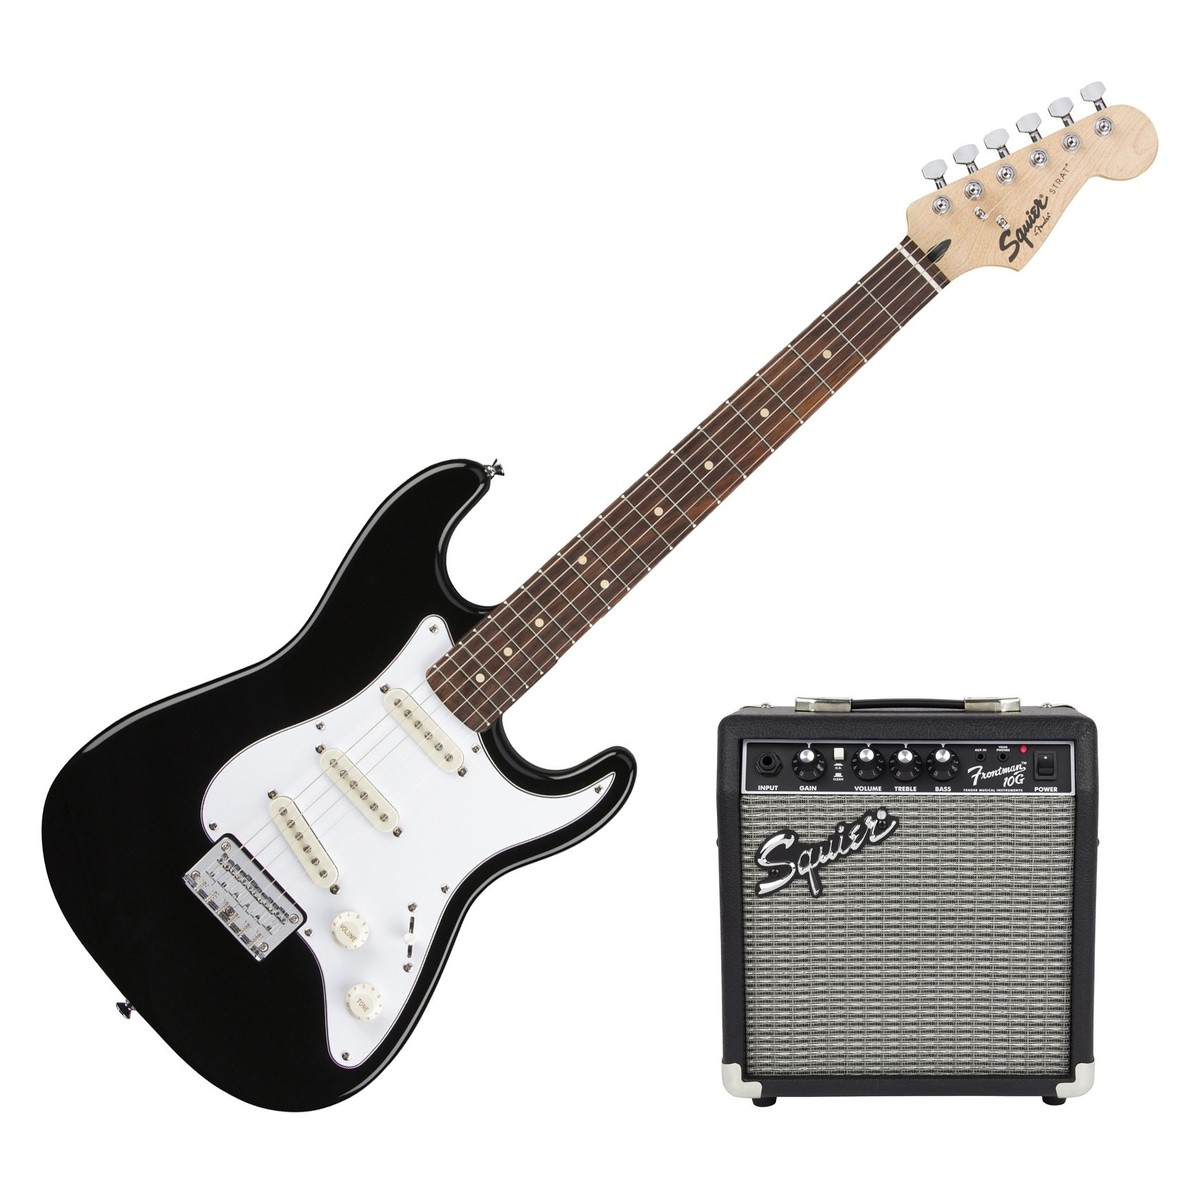 fender squier strat pack ss short scale electric guitar pack black b stock at gear4music. Black Bedroom Furniture Sets. Home Design Ideas